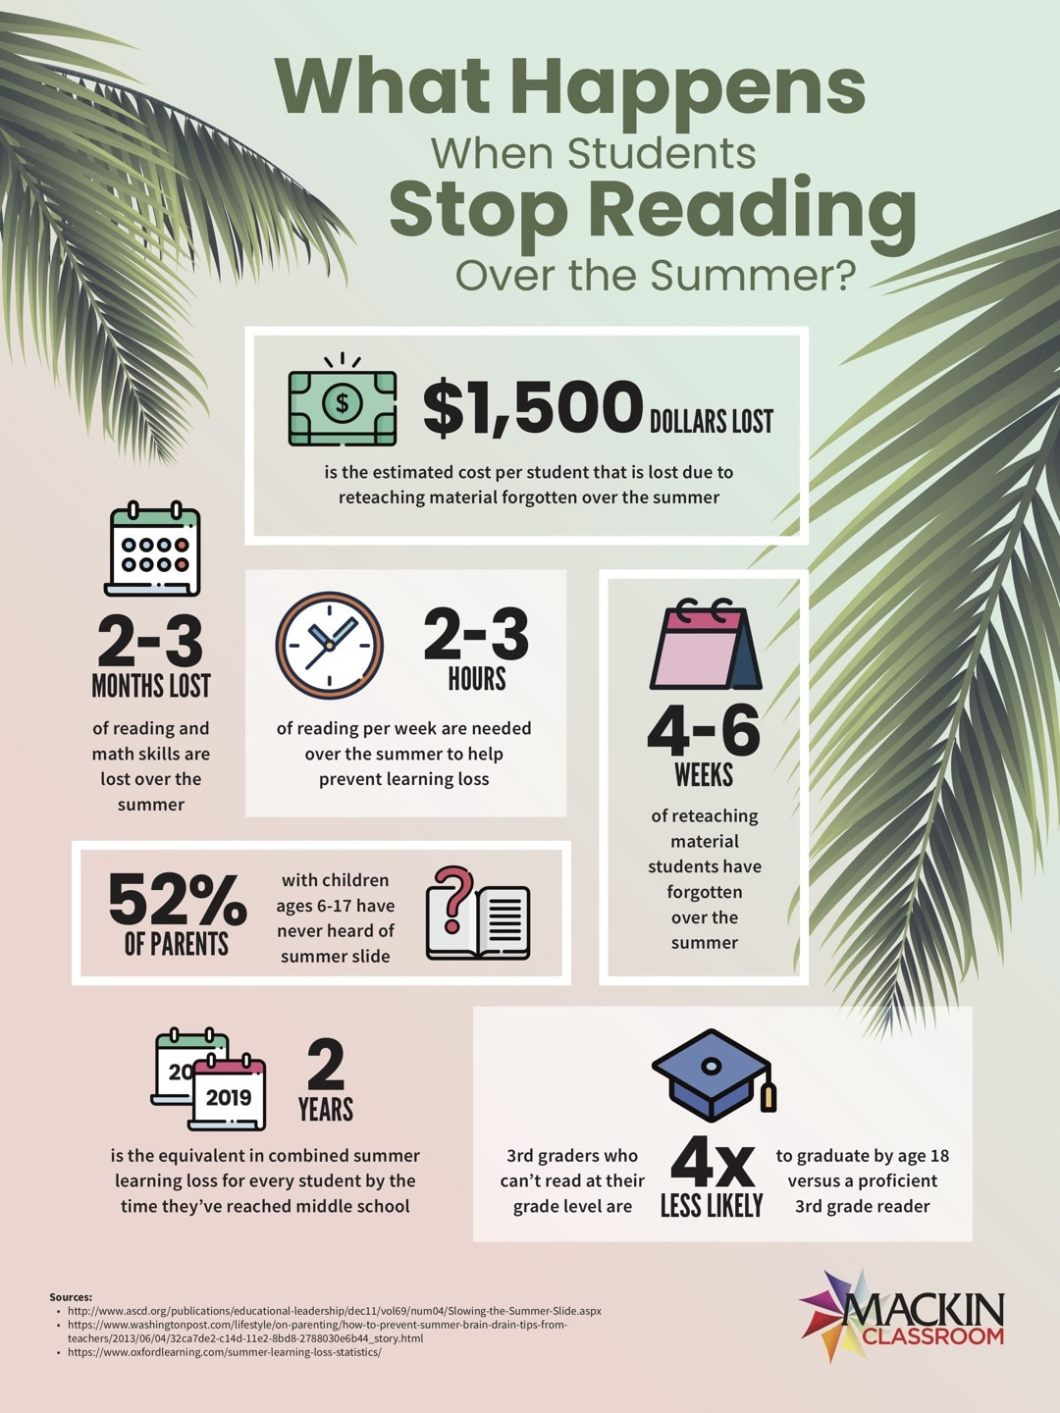 Why Students Shouldn't Stop Reading Over Summer - Infographic